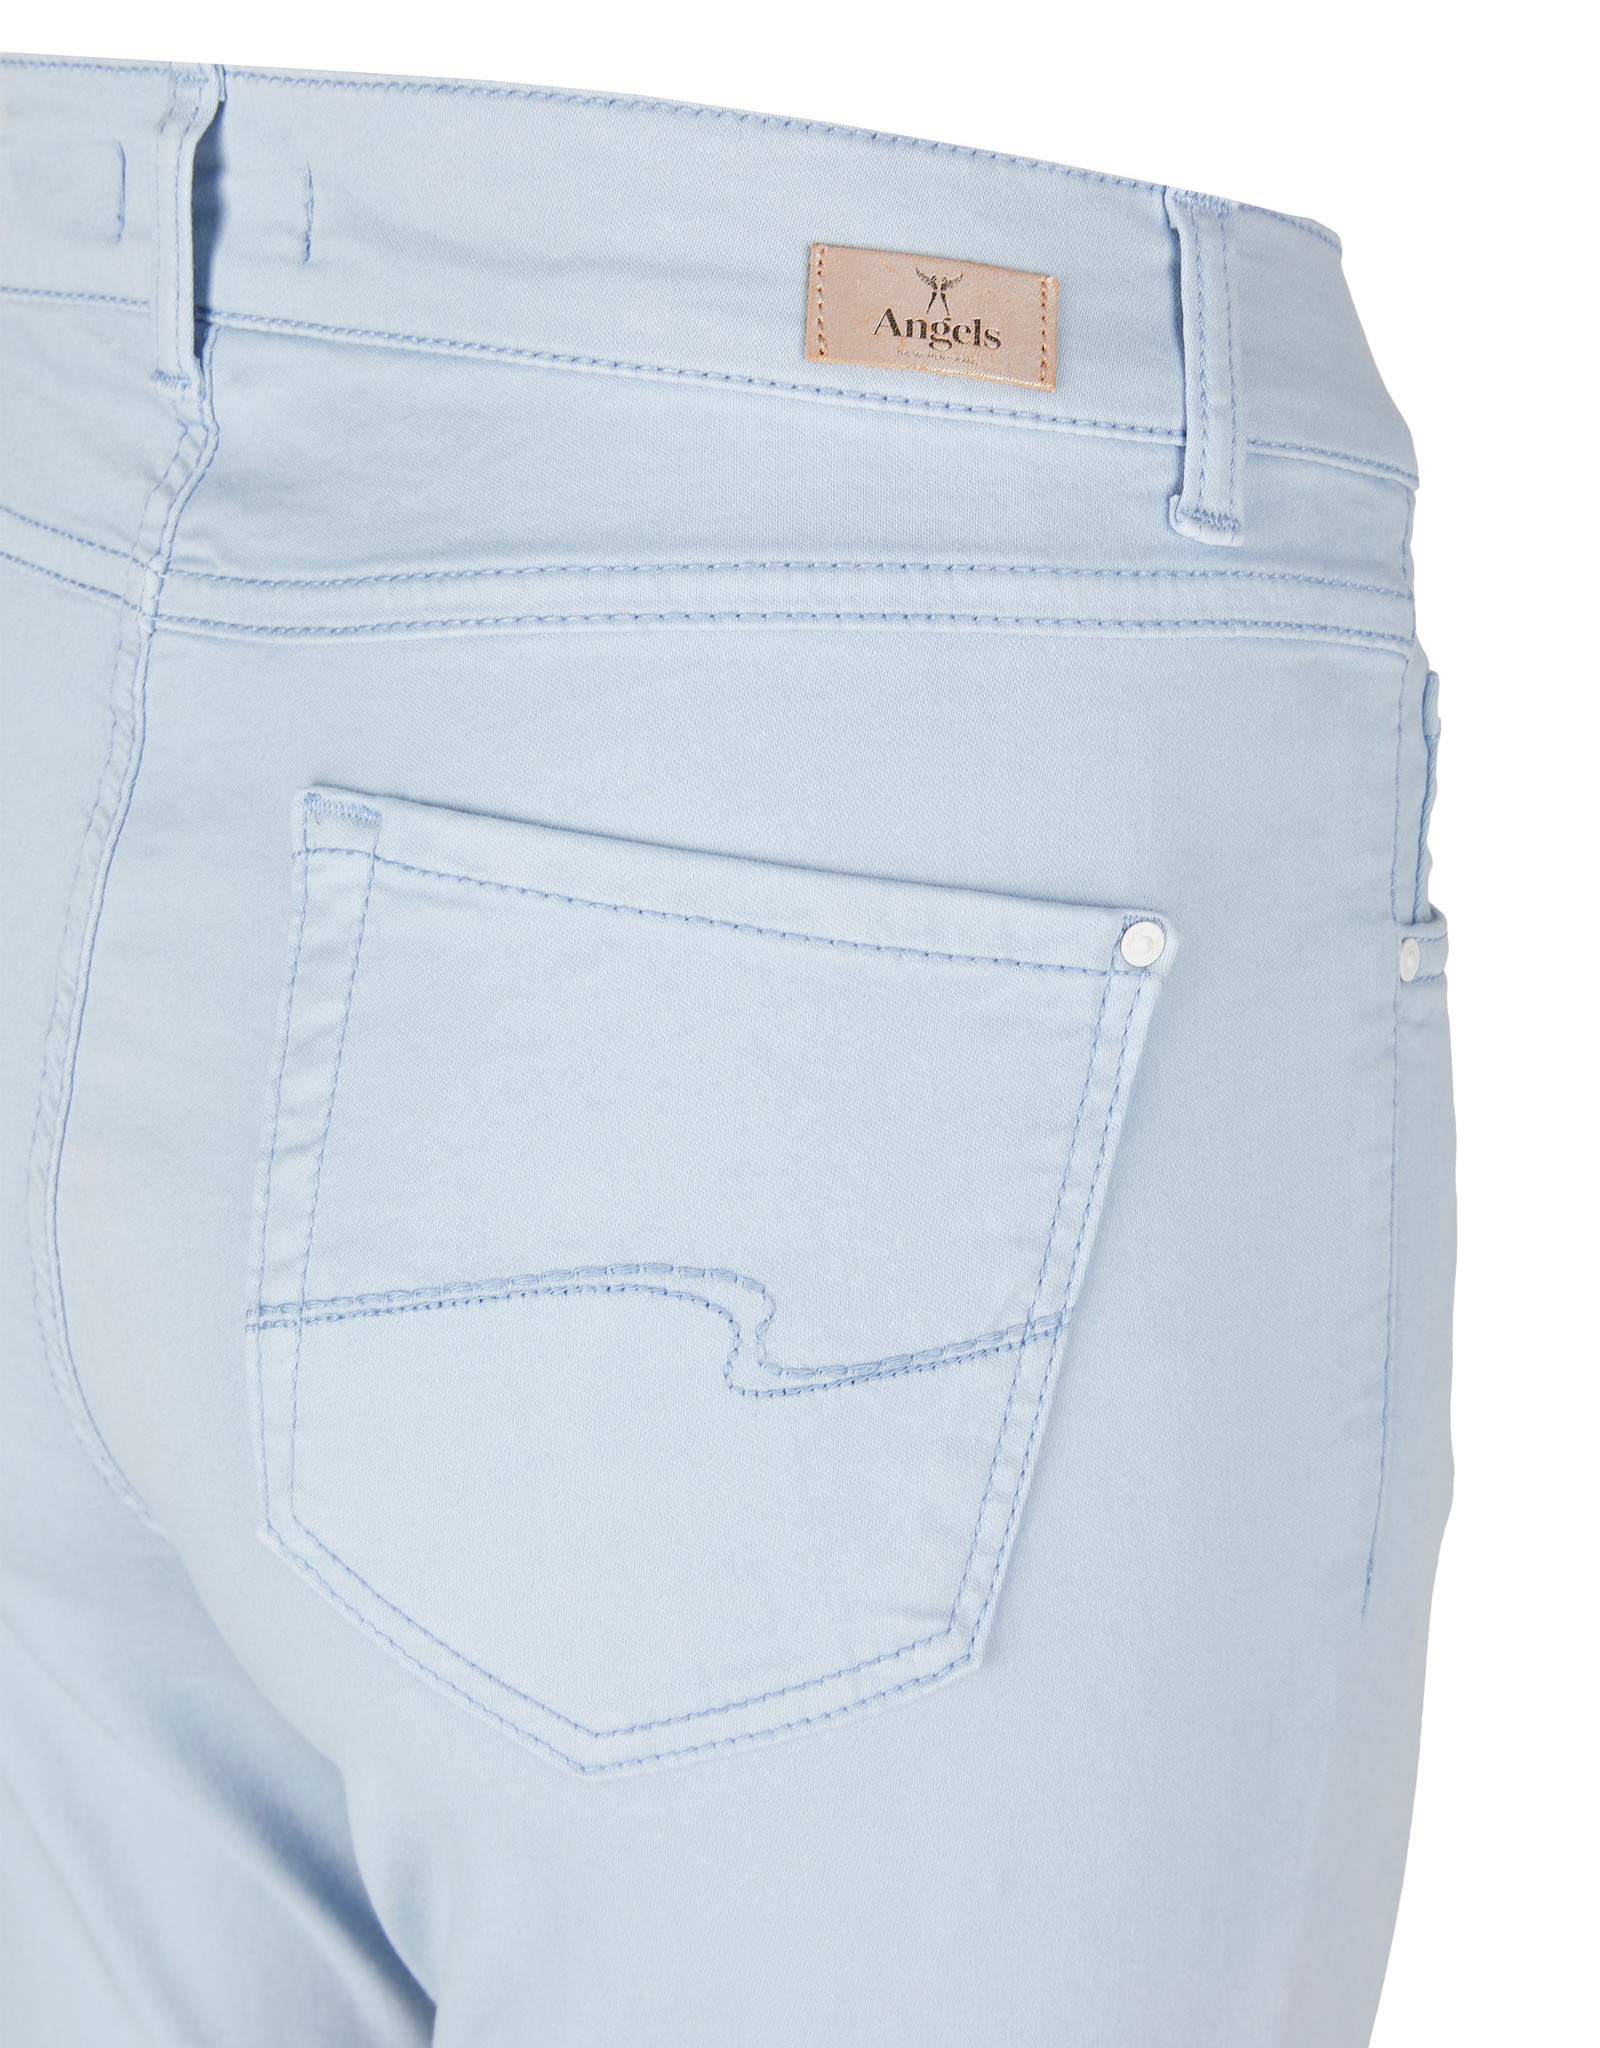 Angels jeans 340030-784/295 cici